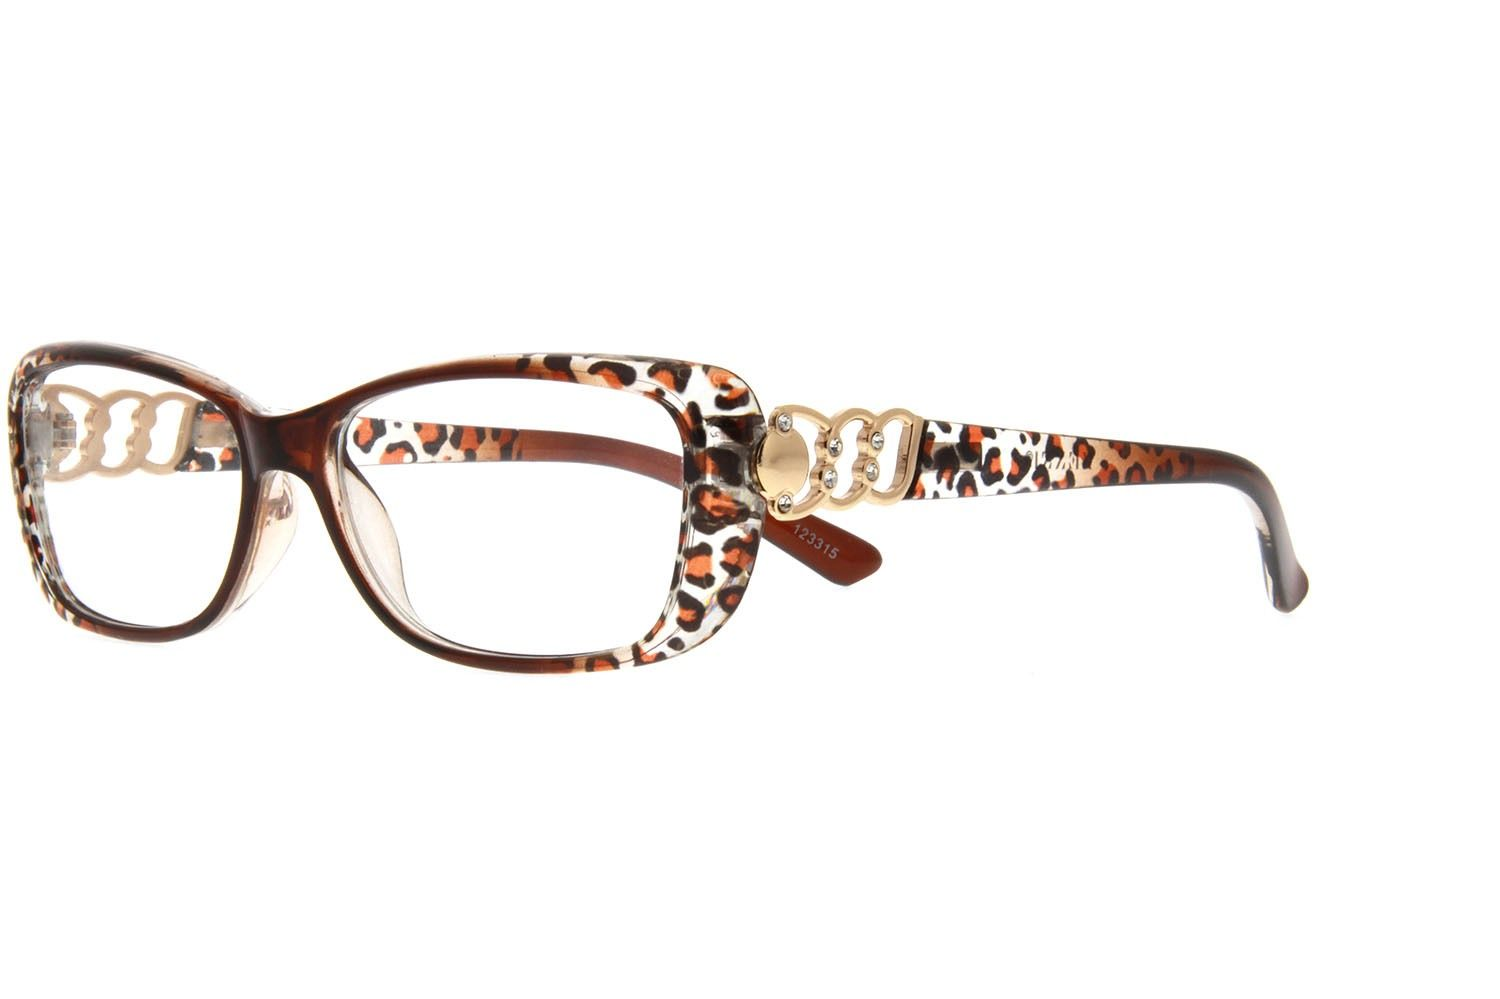 Plastic Full-rim Frame1233 | Designer eyeglasses, Brown and Models